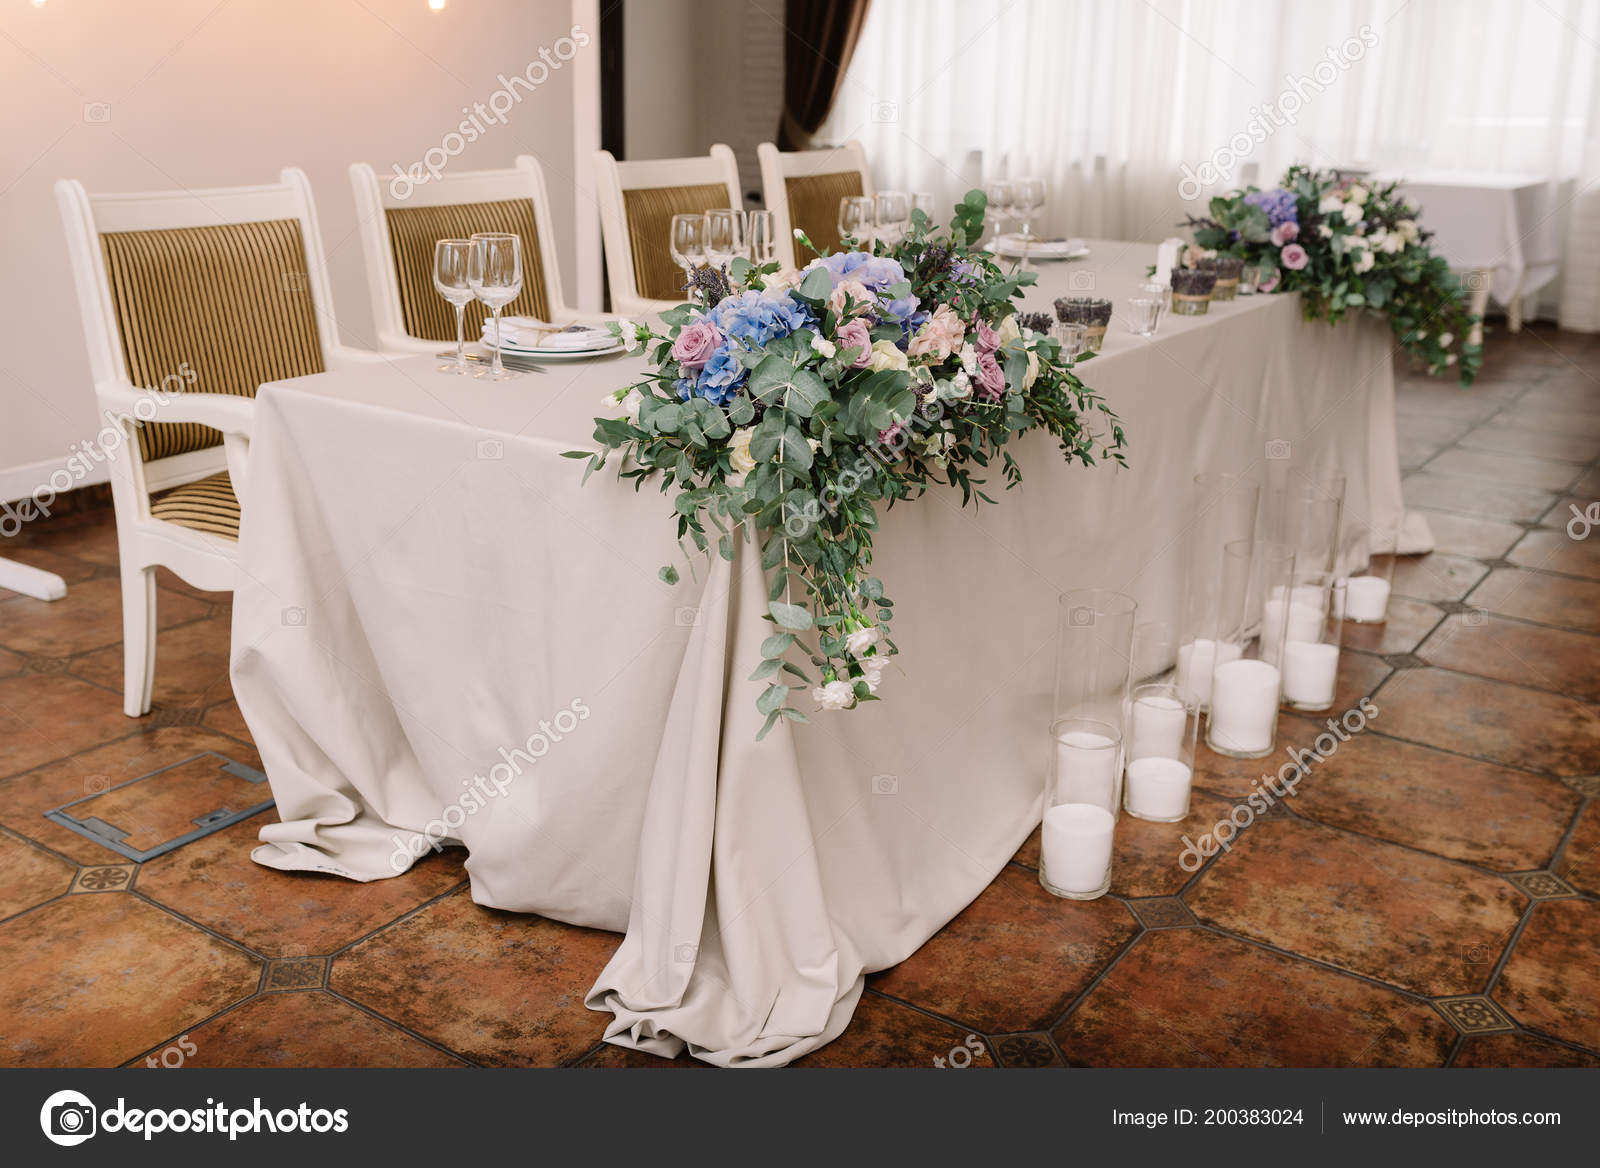 Stylish wedding table decoration flowers stock photo stylish wedding table decoration flowers fotografia de stock junglespirit Images